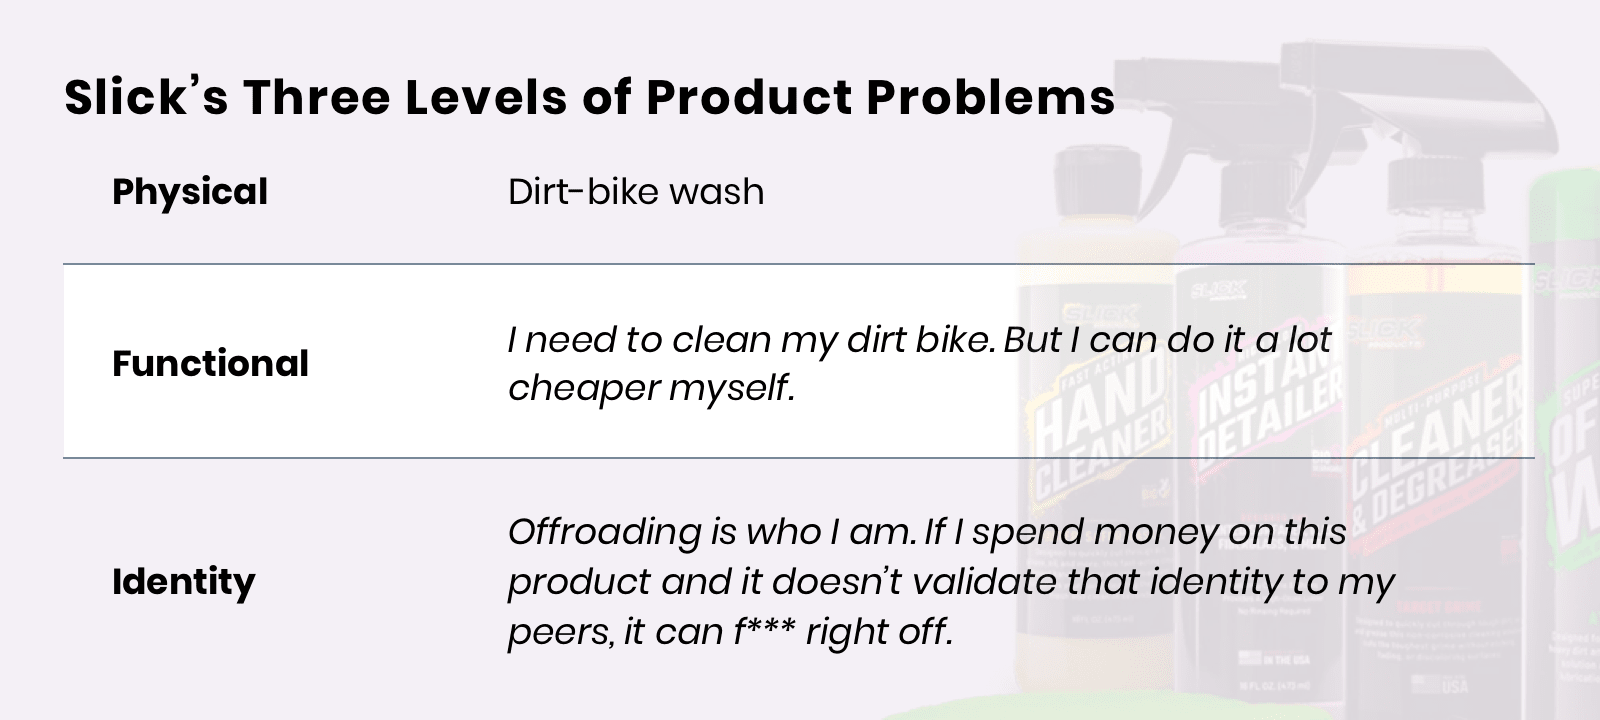 Slick's Three Levels of Product Problems